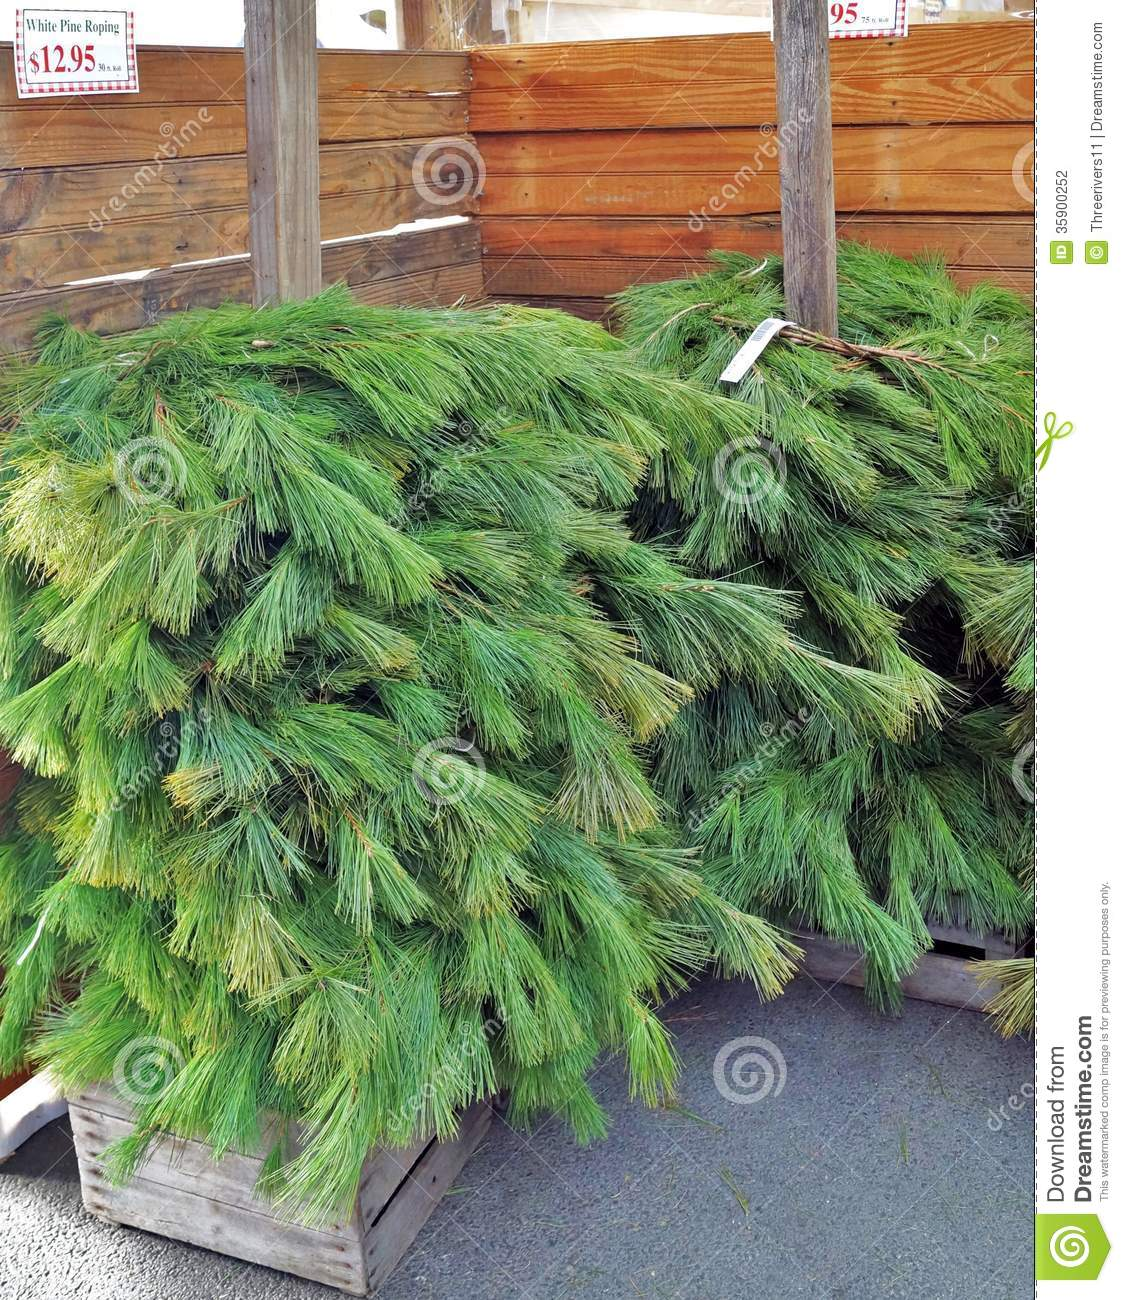 raw pine roping for christmas wreaths - Christmas Garland Decorations Sale